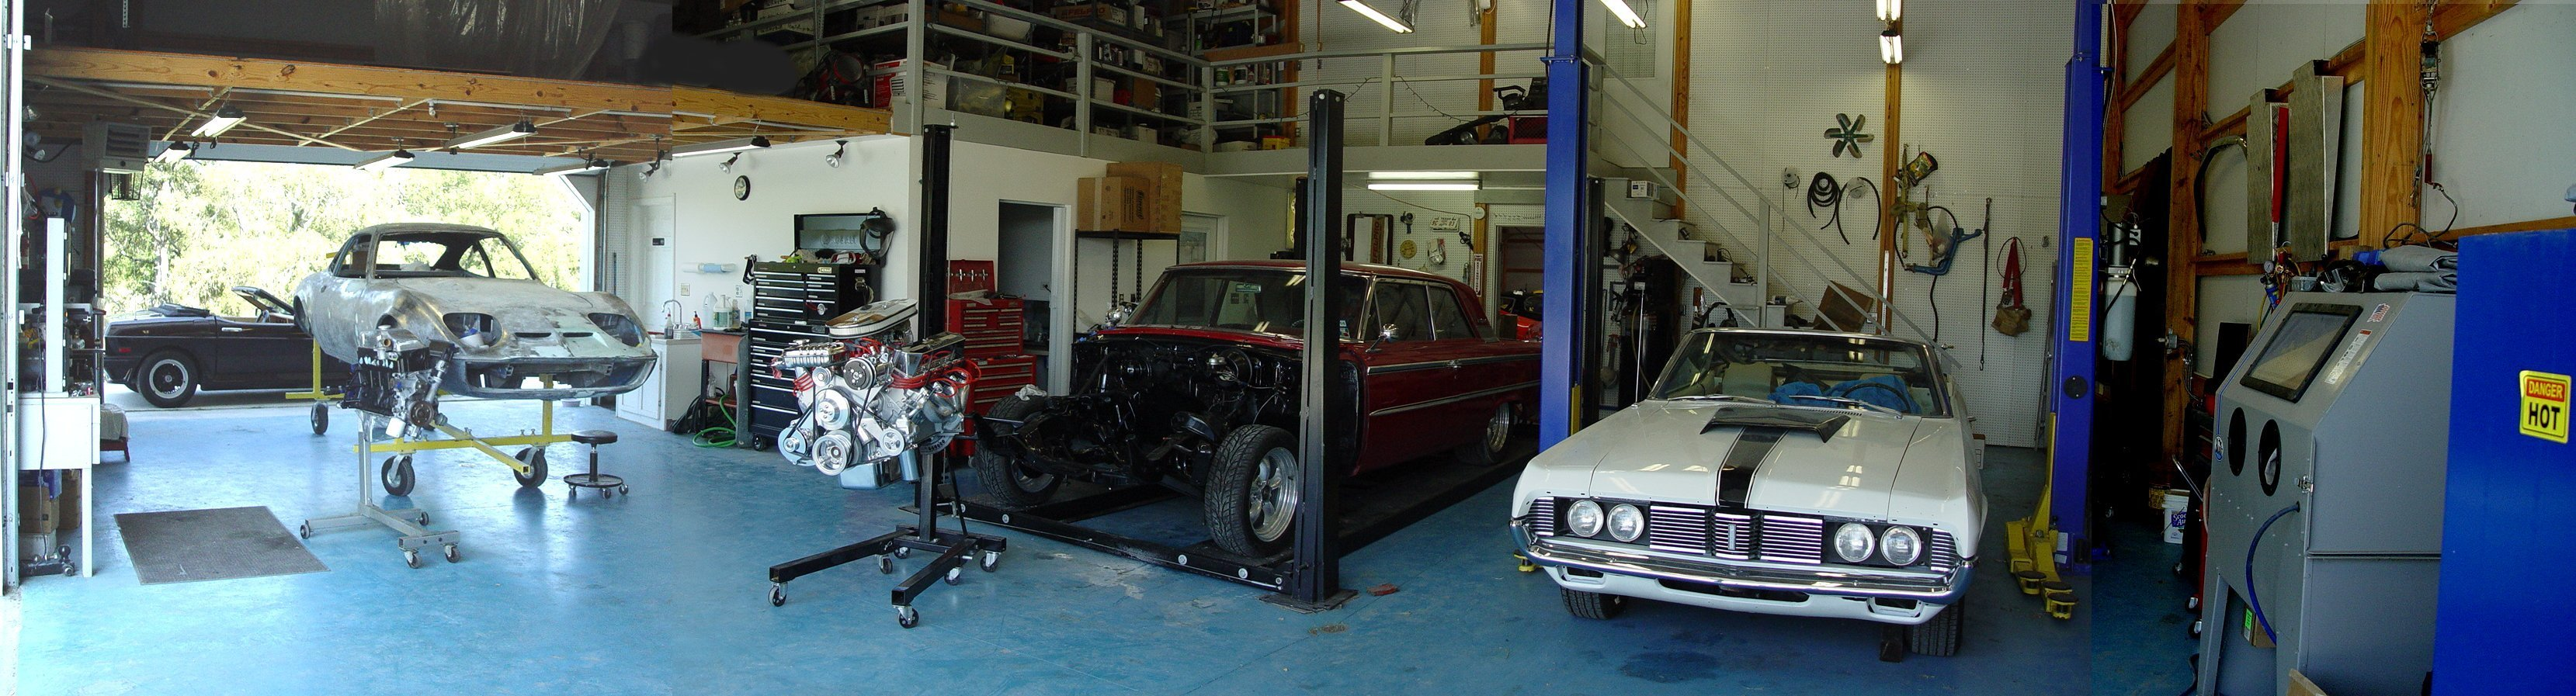 Midlife Classics - Classic Car Restoration, Service and Support ...